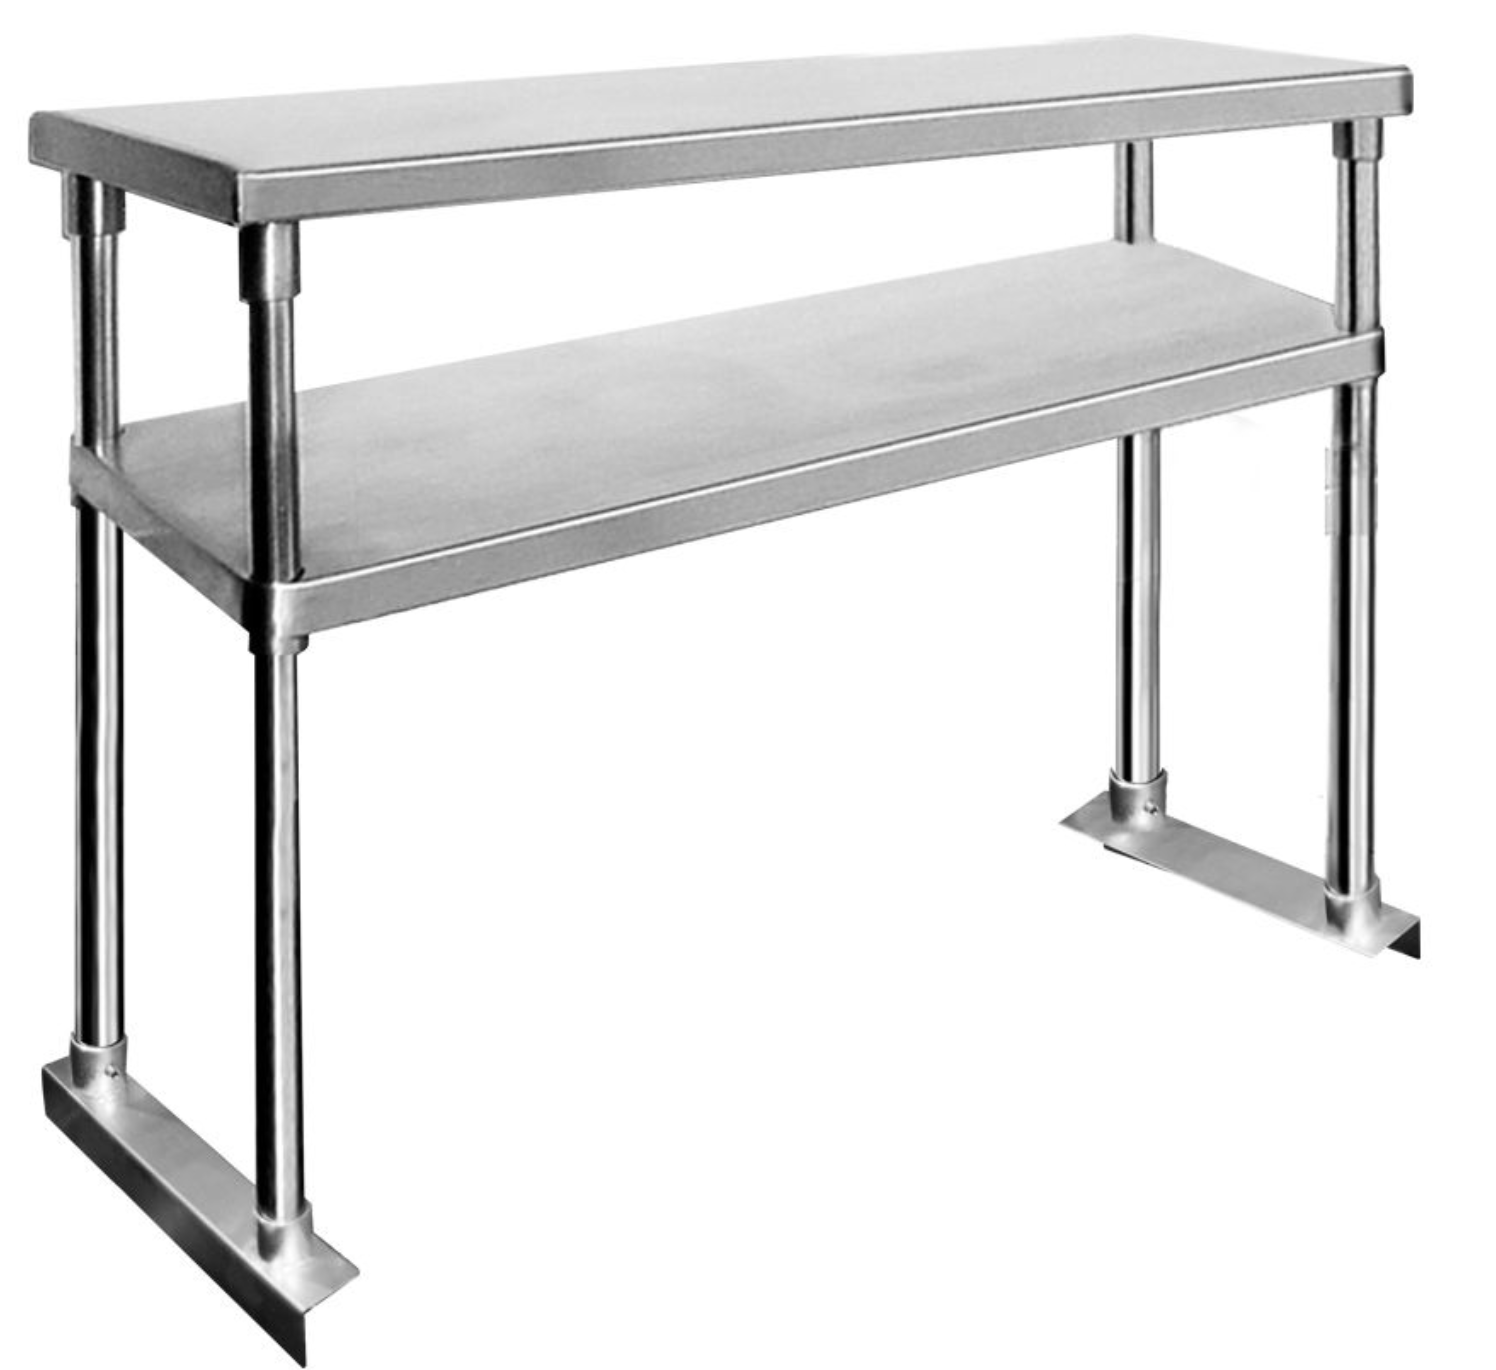 FED-Double Tier Workbench Flat Feet Overshelf 750mm High - Catering Sale